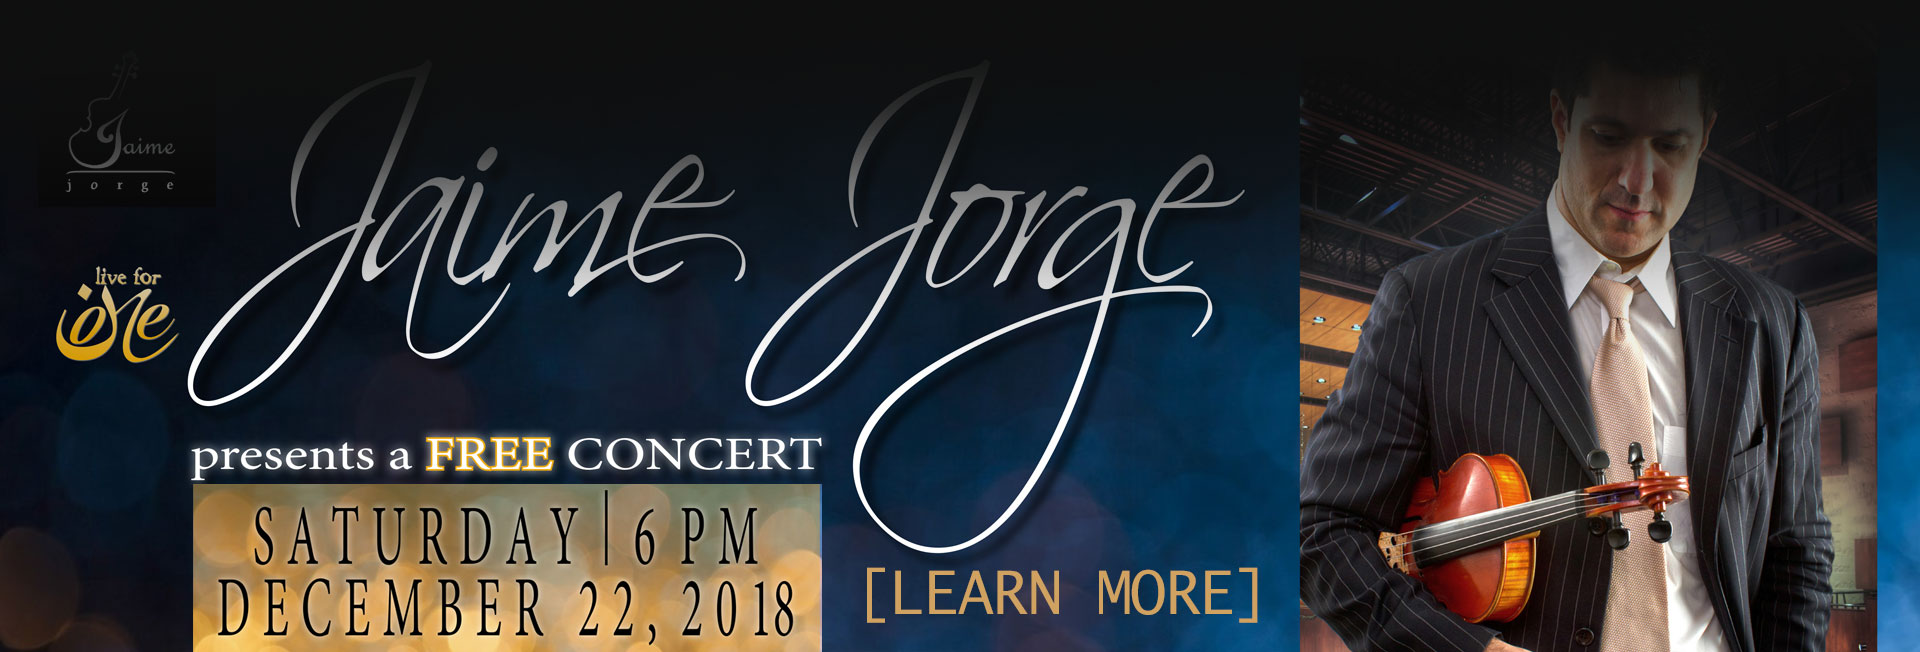 Jaime Jorge Free Concert Saturday December 22 at 6PM